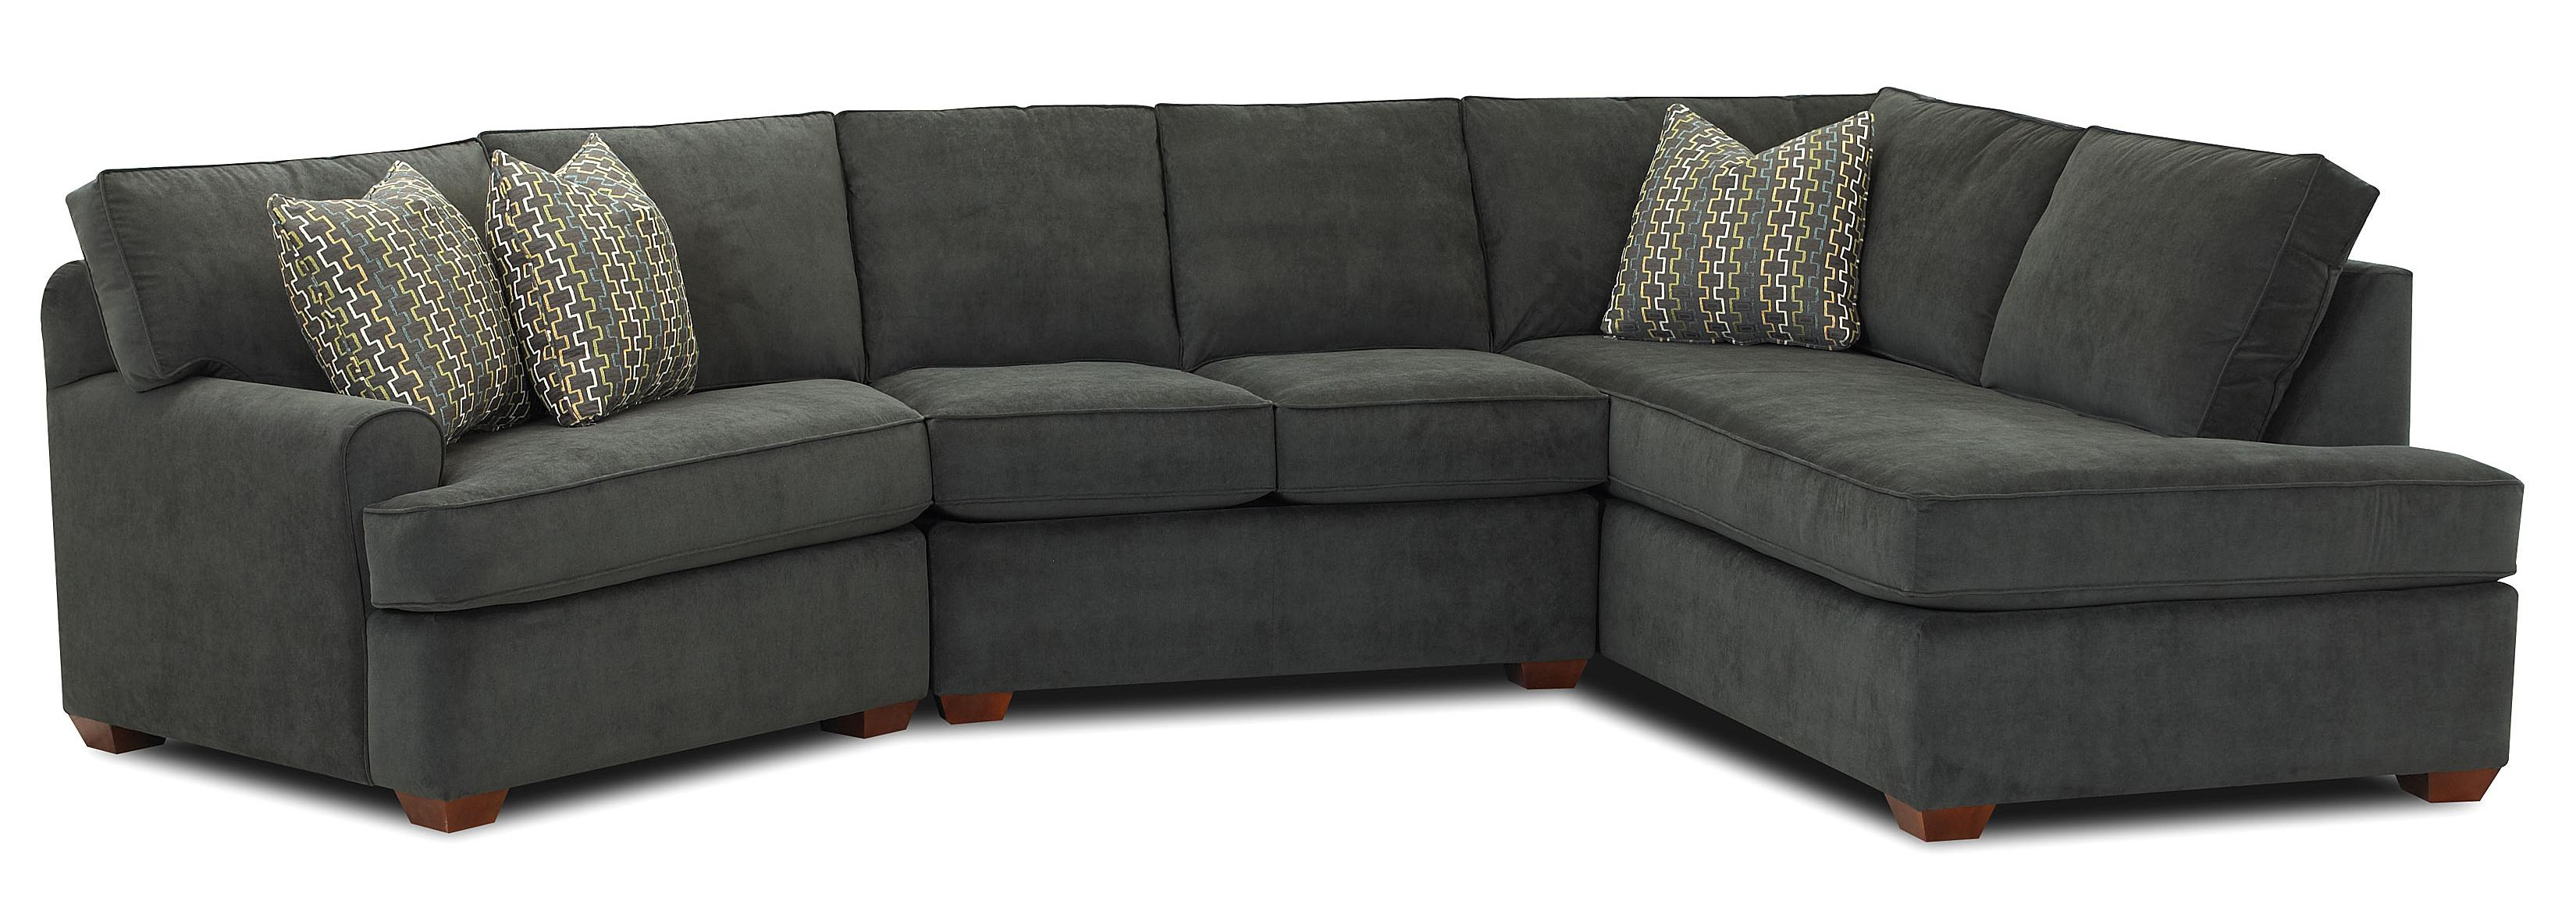 Sectional sofa with right facing sofa chaise by klaussner for Sectional sofa with right side chaise